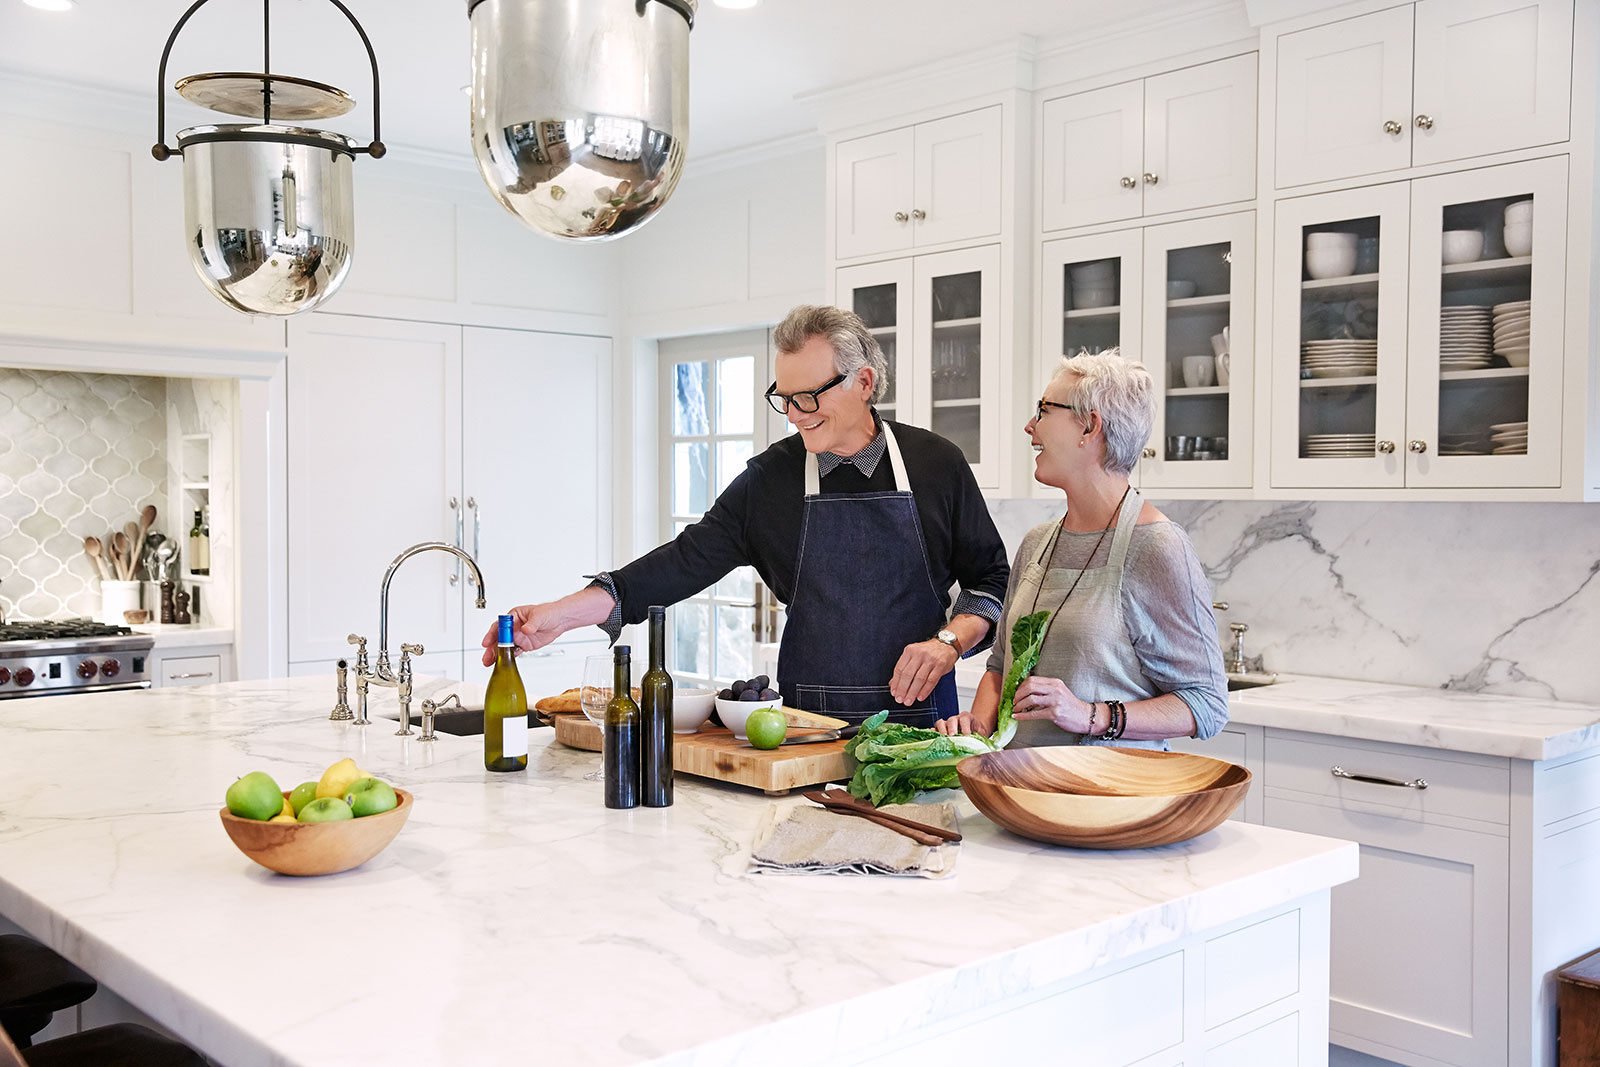 Middle age couple in kitchen  | Dovis Bird Agency Photography